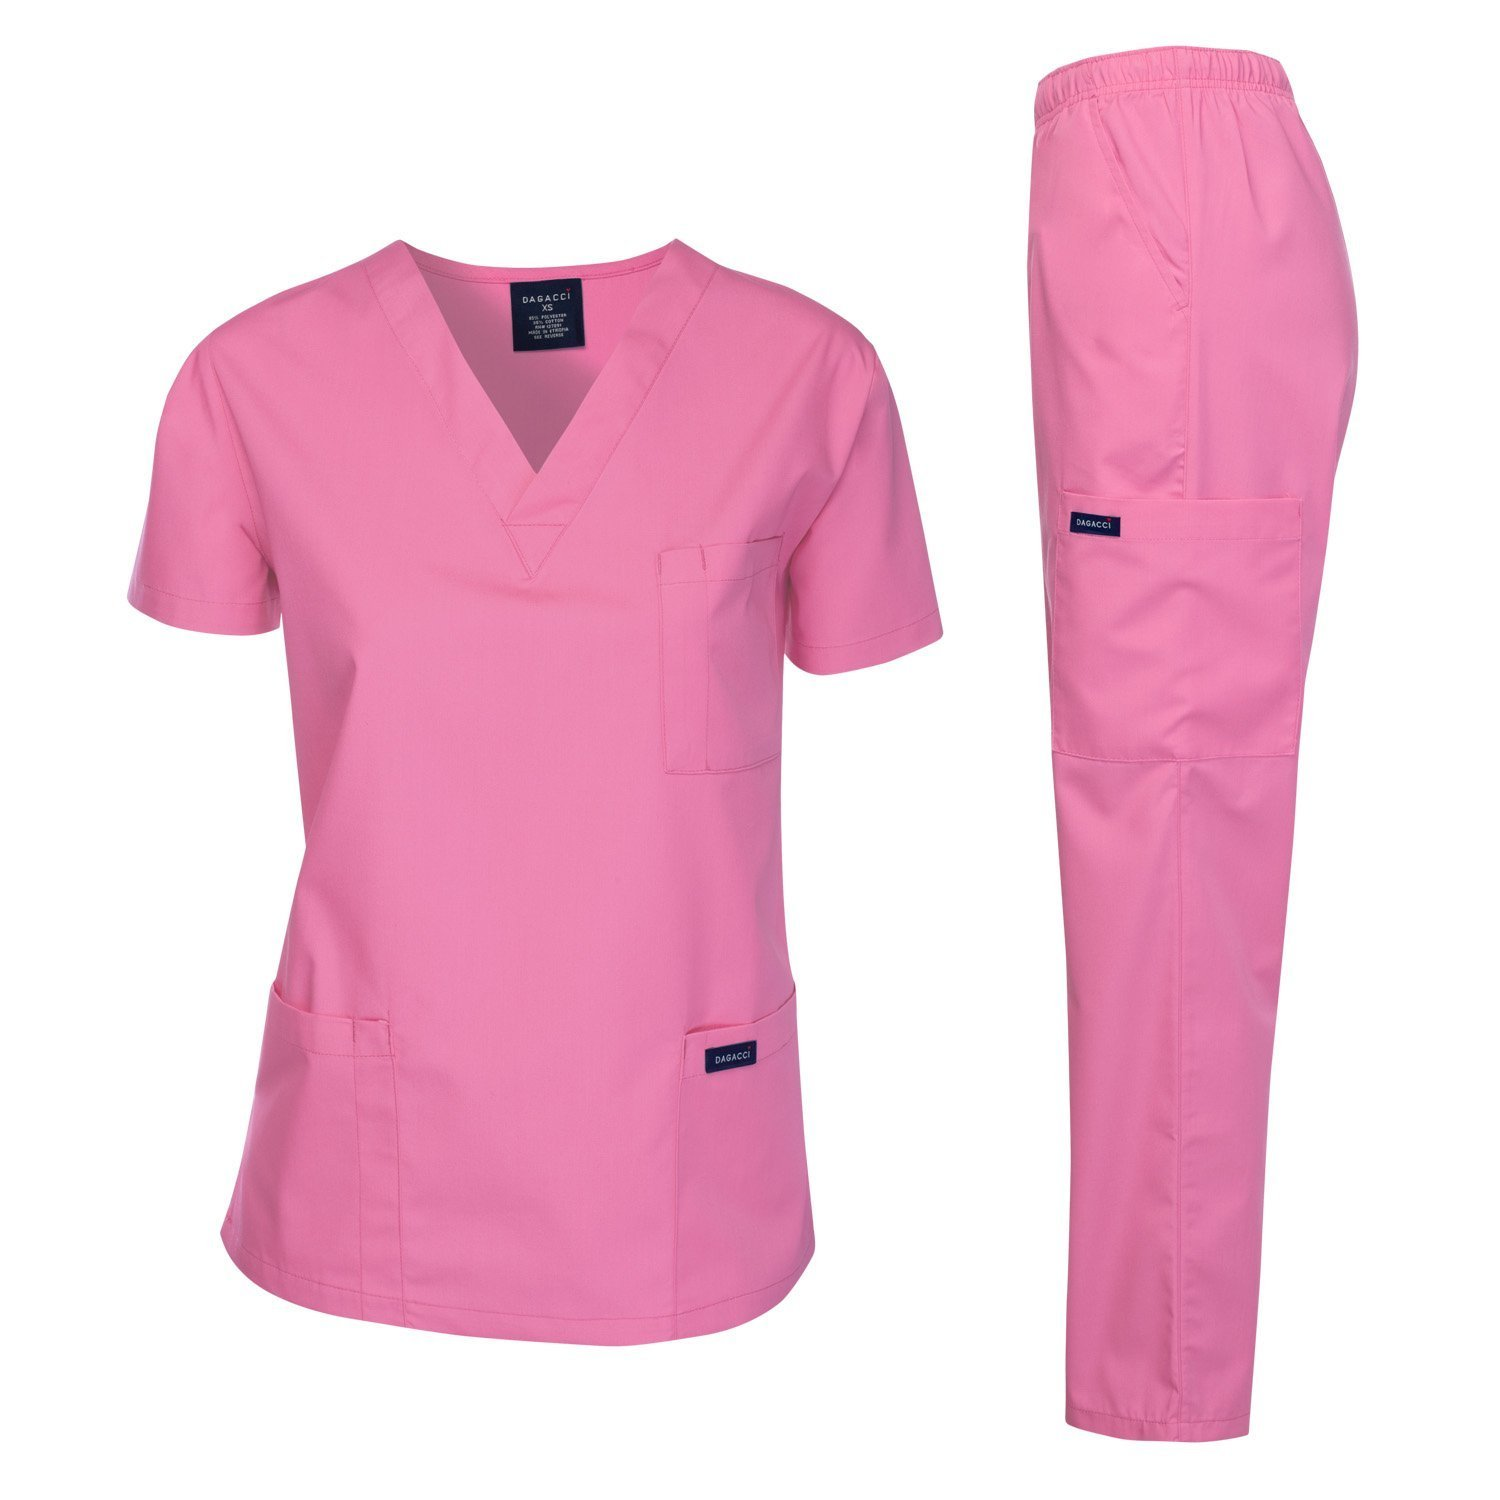 Dagacci Medical Uniform Women's Medical Scrub Set Top and Pant, ROSE PINK, S